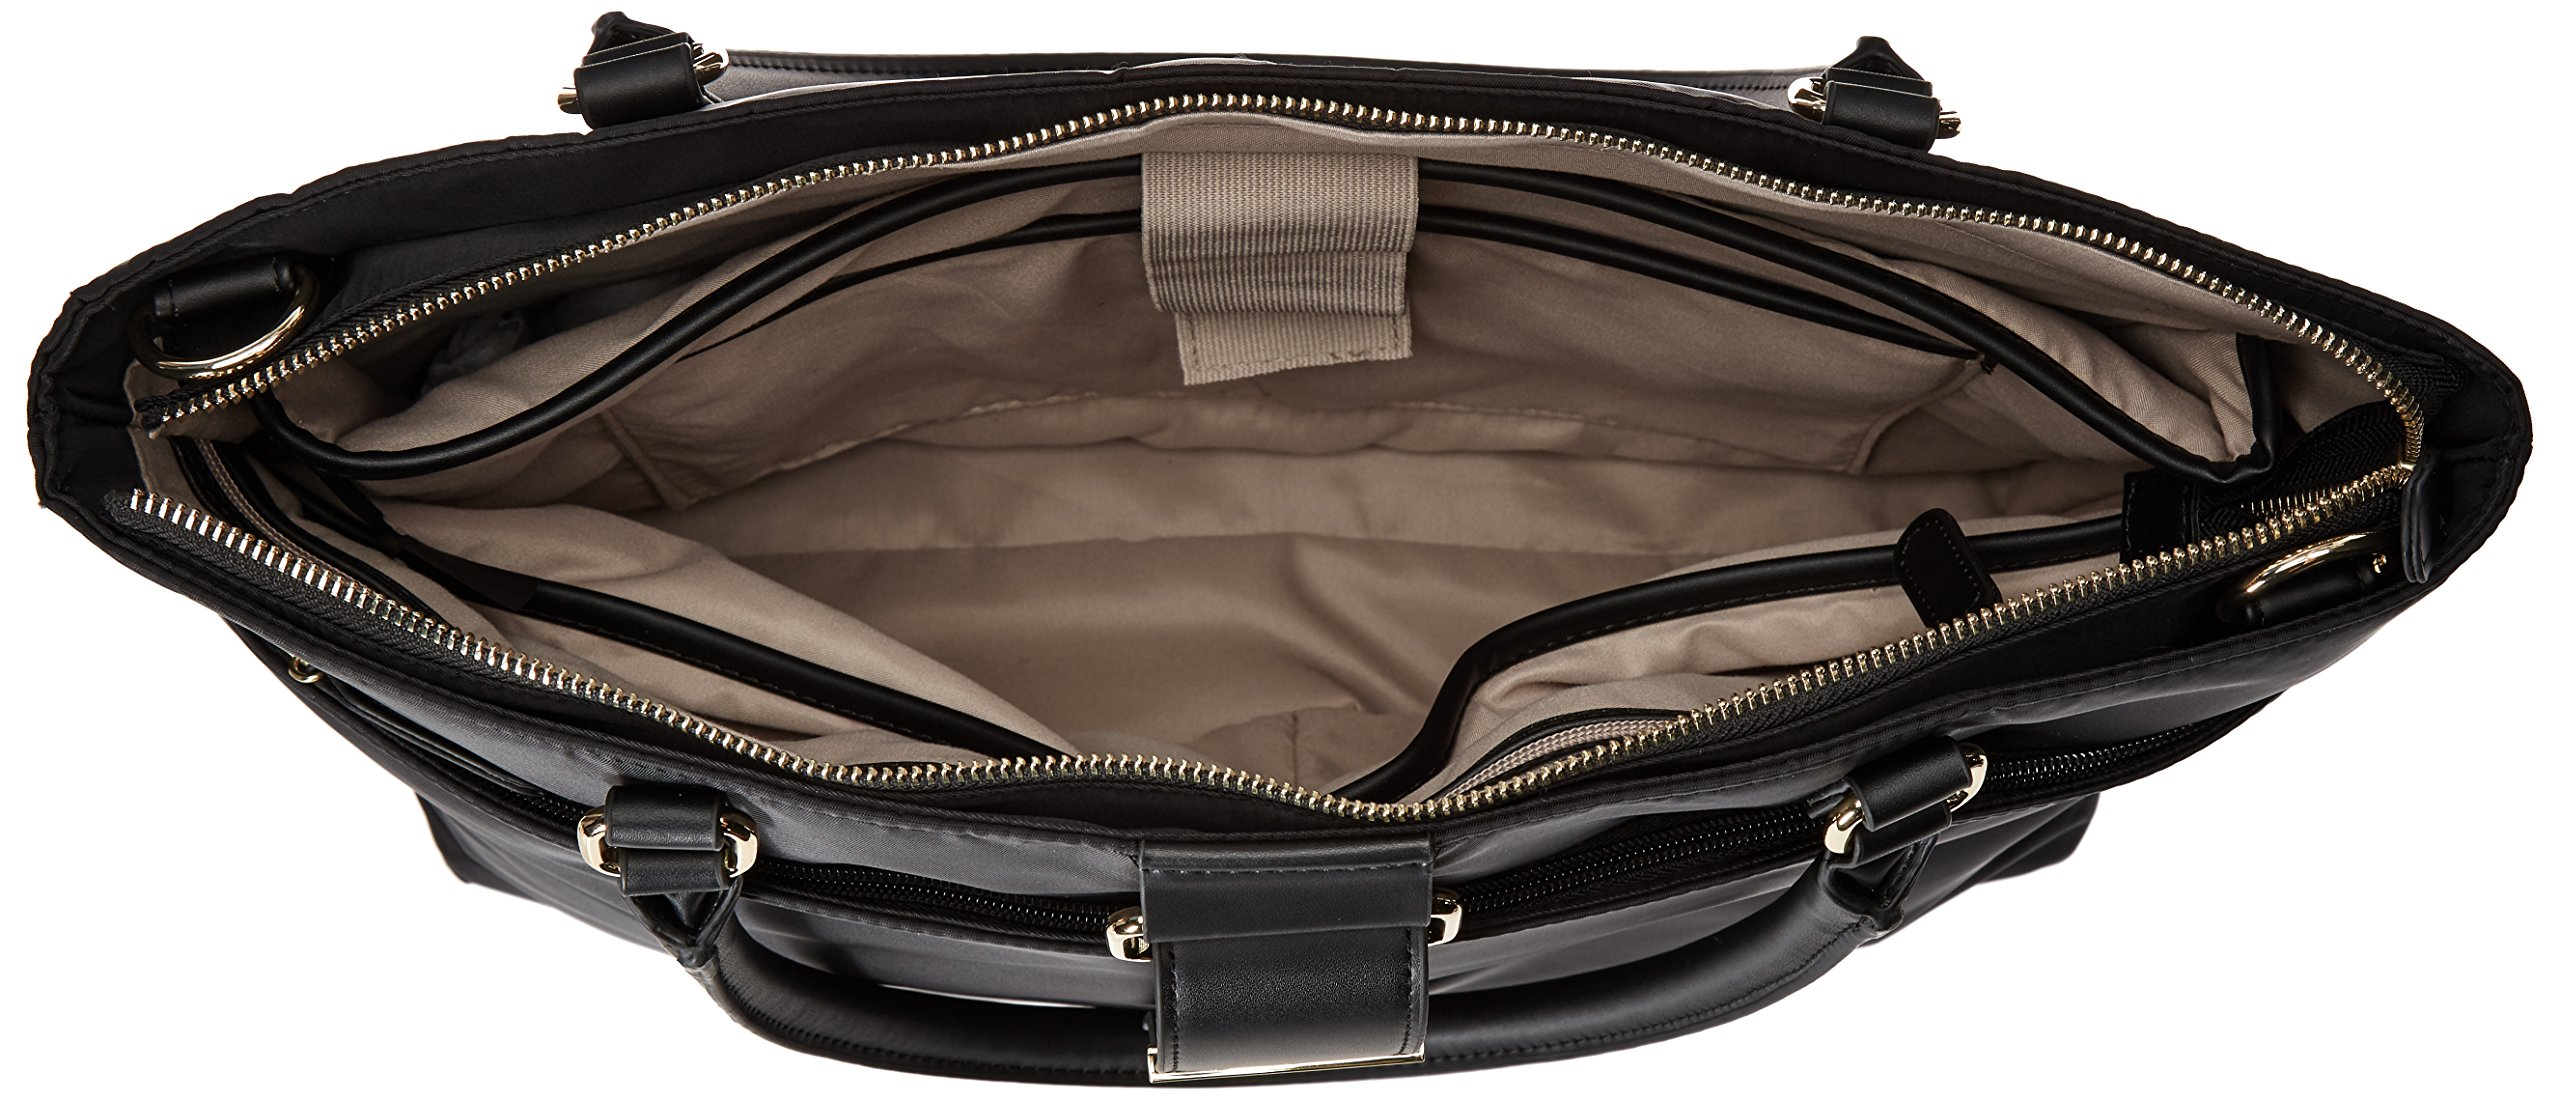 Wenger Luggage Ana 16'' Women's Laptop Tote Bag, Black, One Size by Wenger (Image #5)